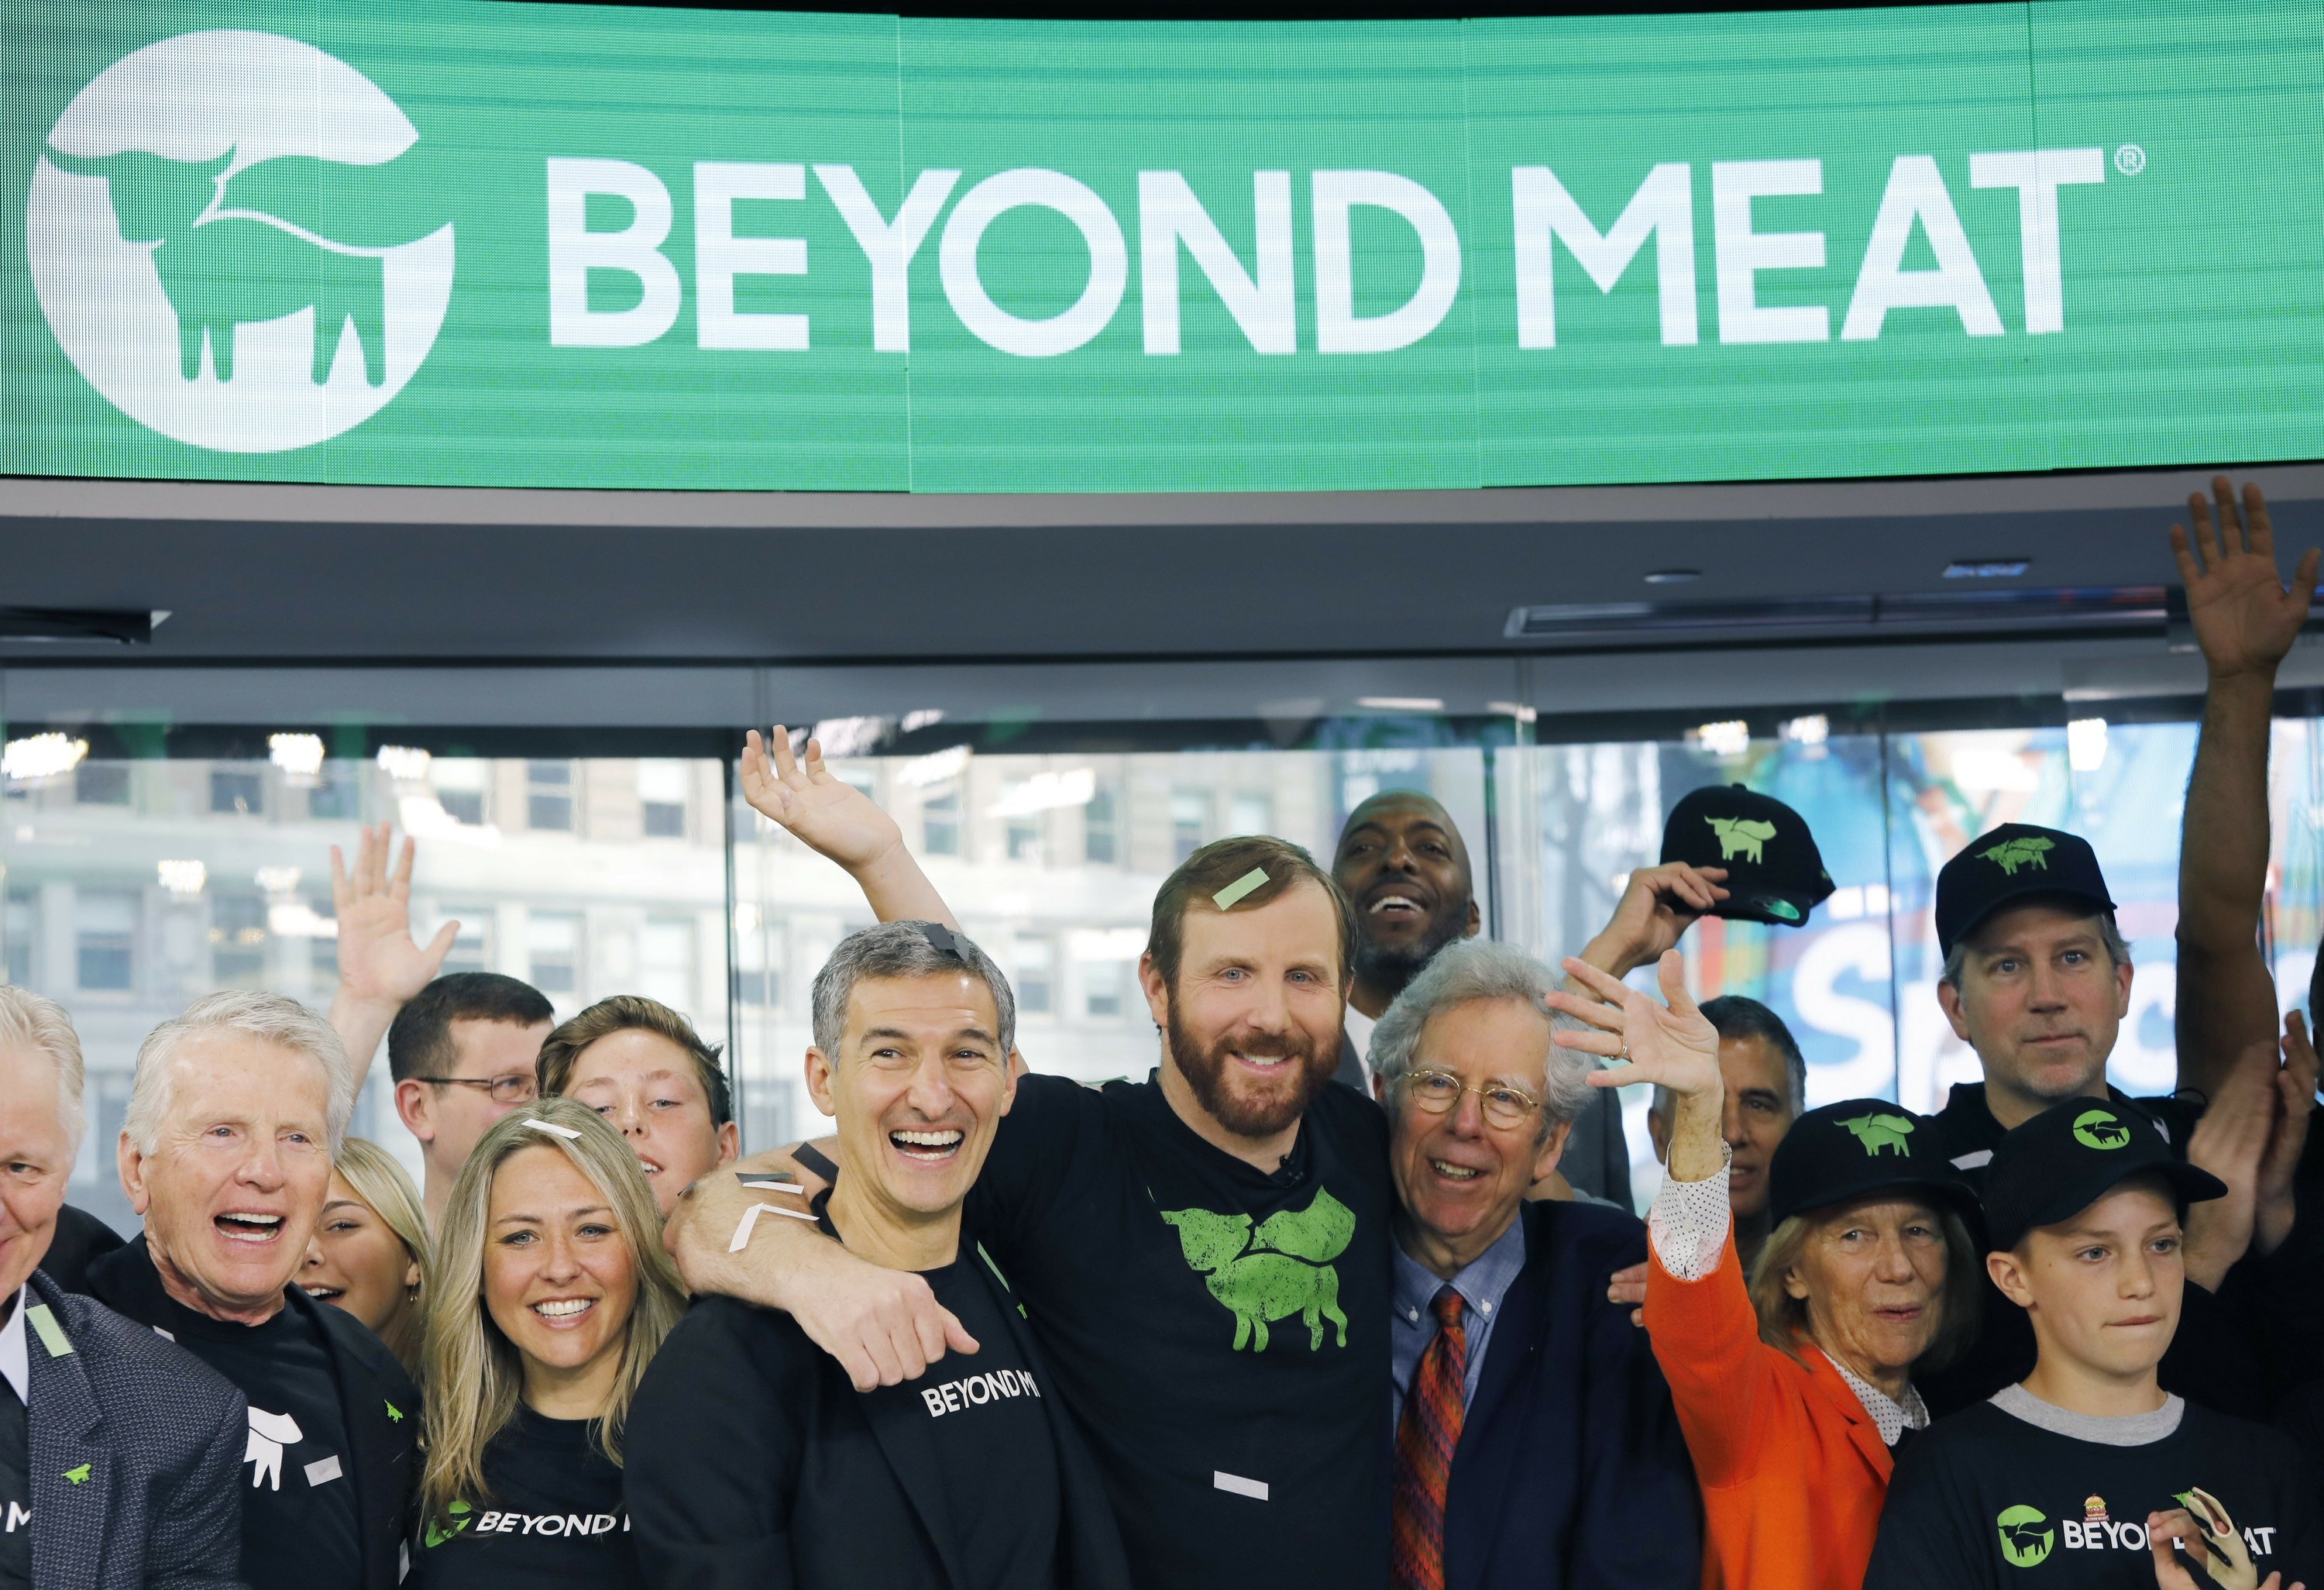 What did beyond meat ipo on